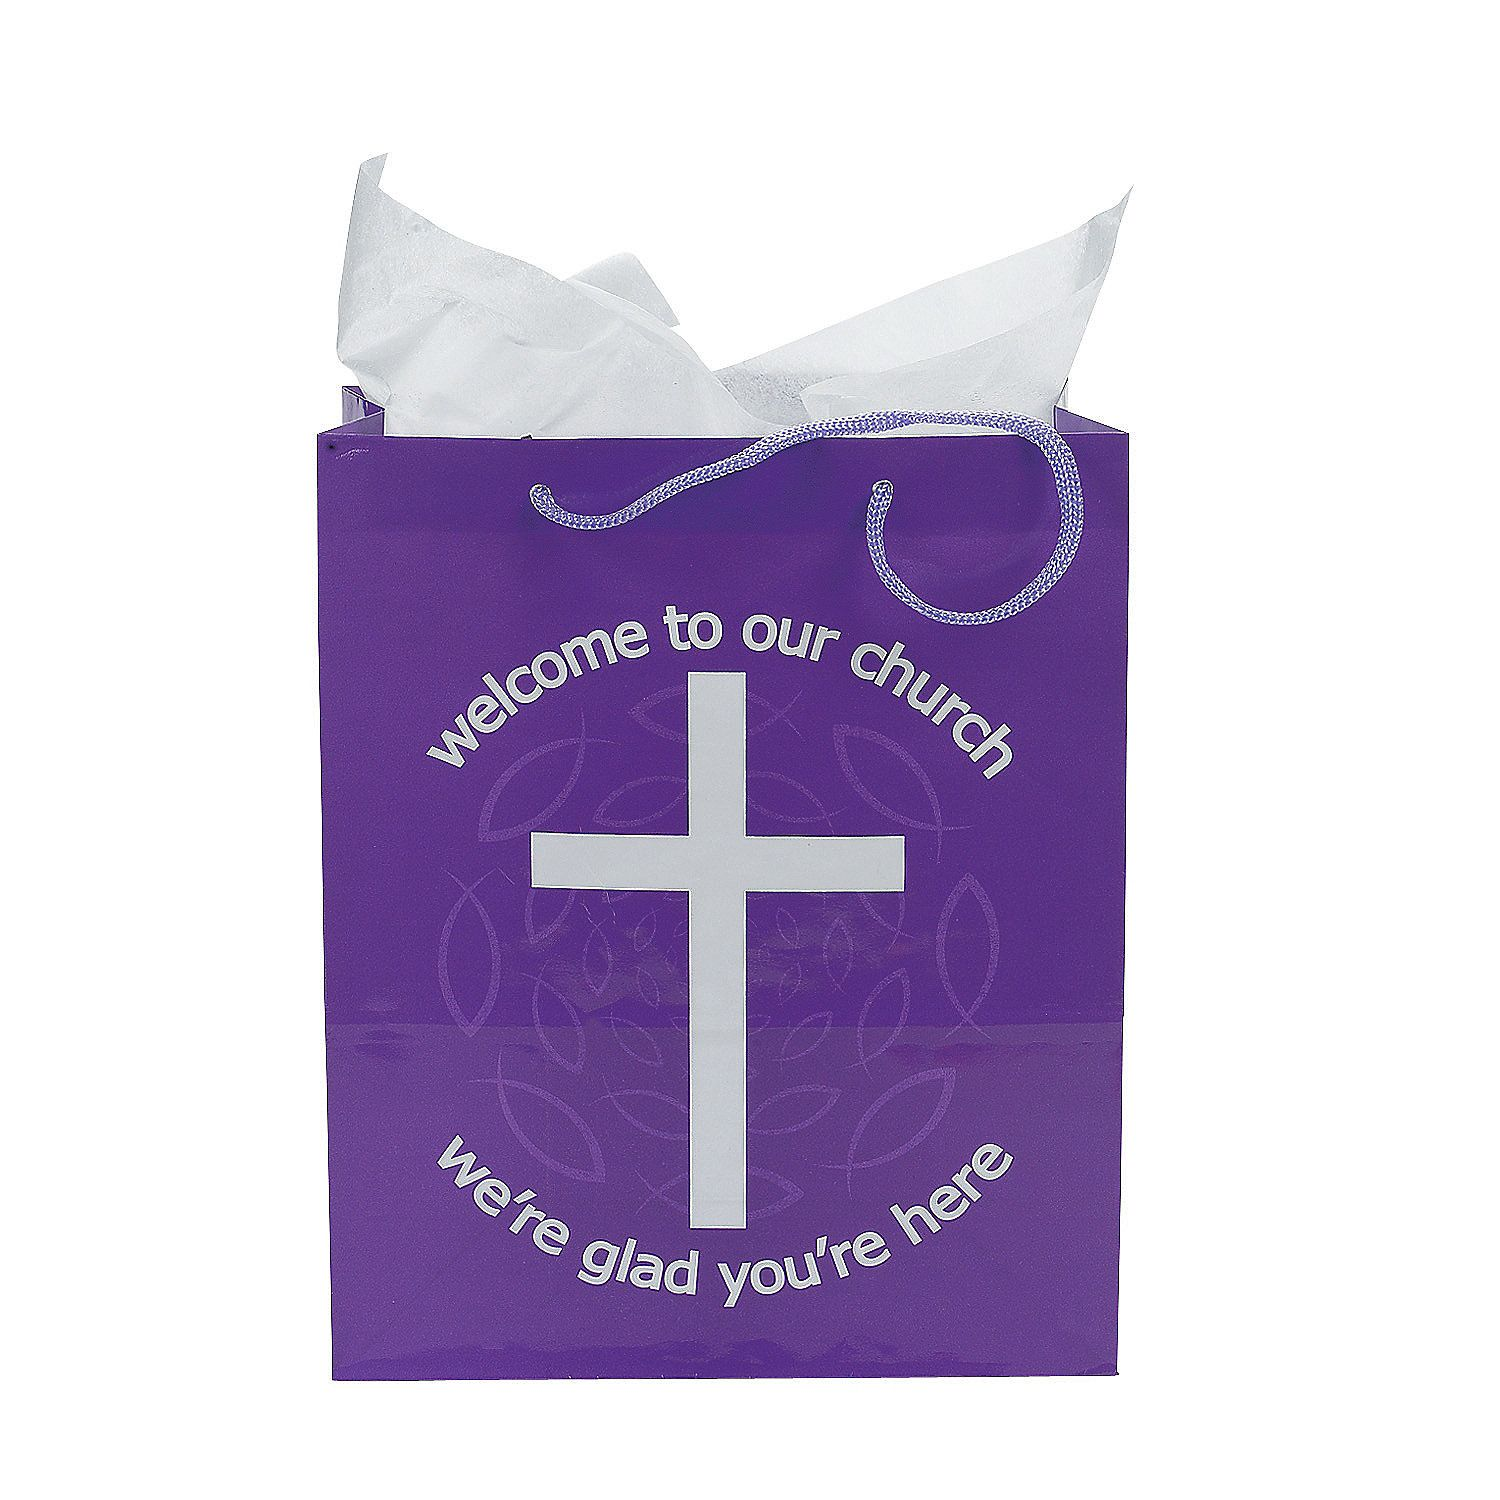 Medium purple welcome to our church gift bags churches bag and welcome to our church bags orientaltrading i ordered some of these kristyandbryce Images